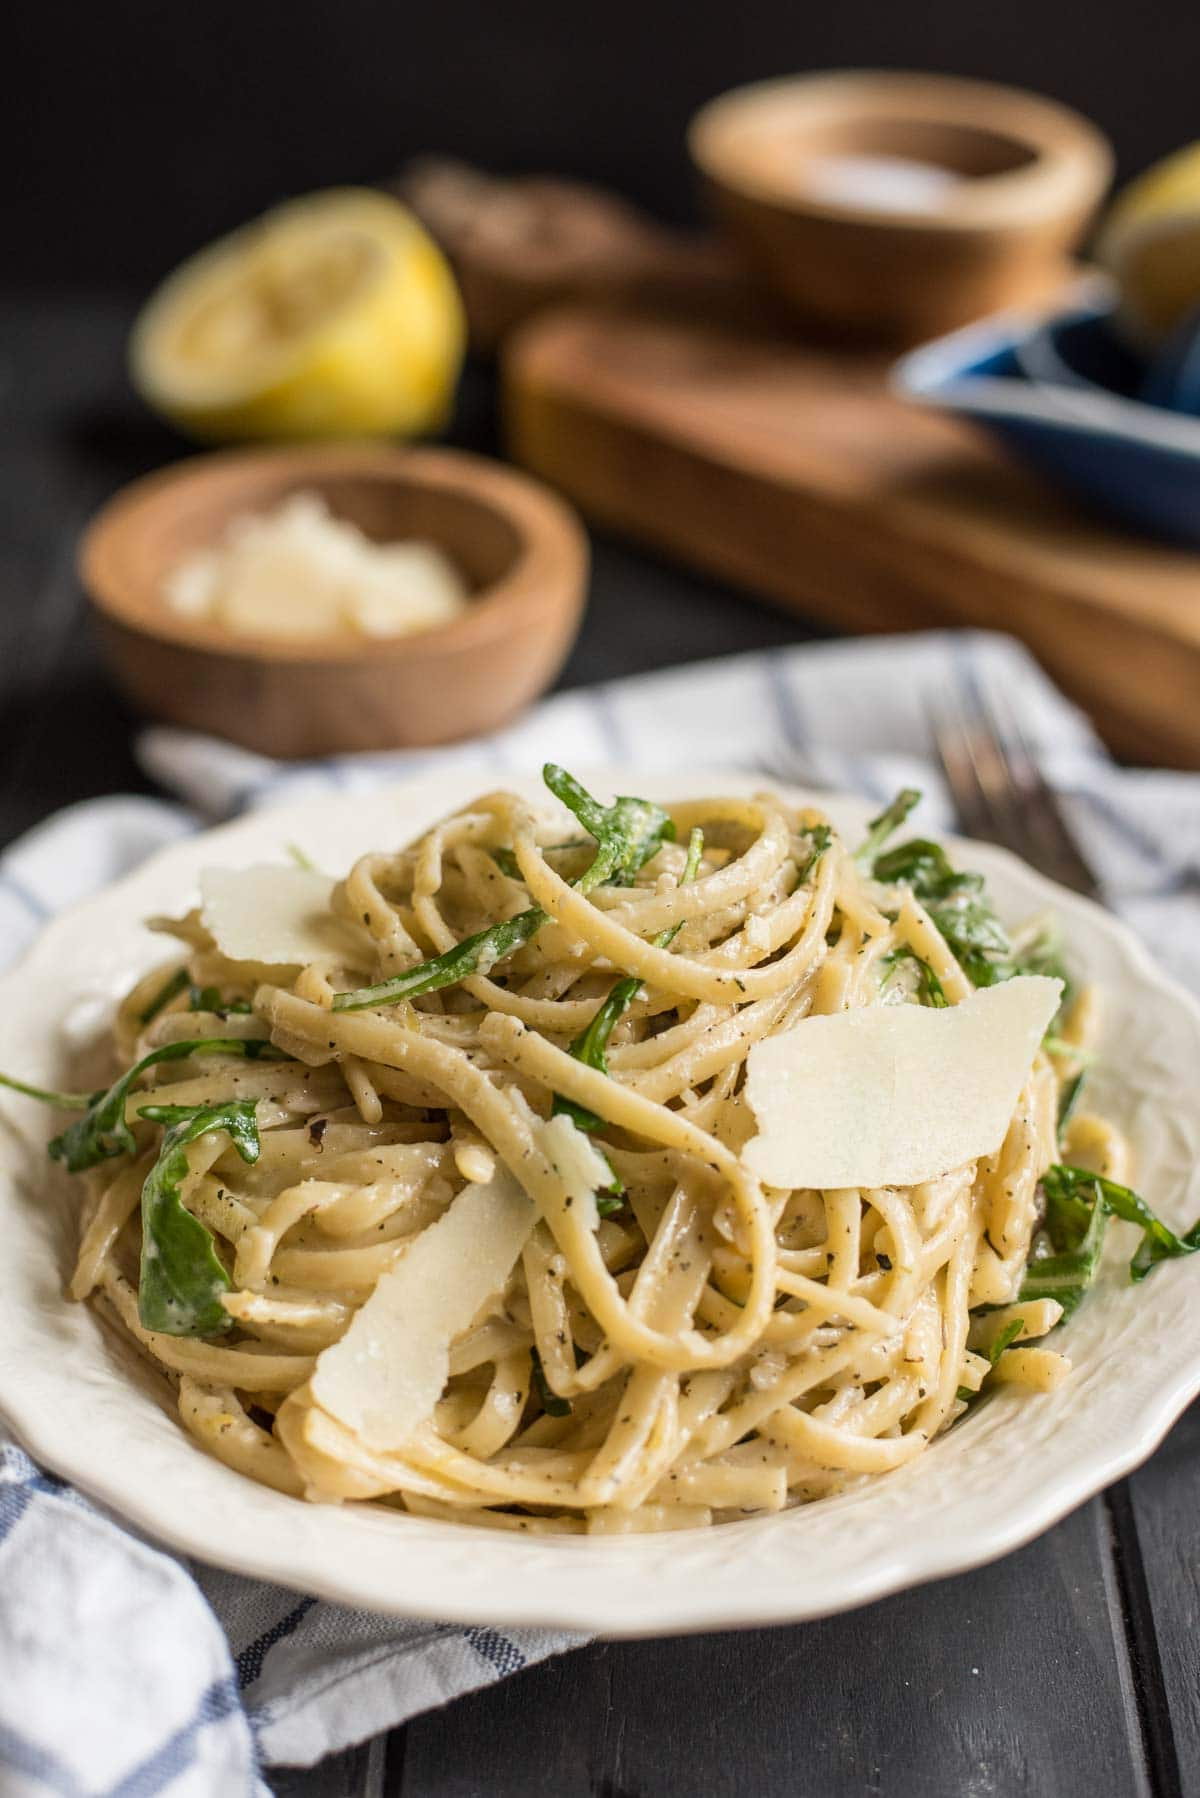 You can have this creamy, comforting Parmesan Lemon Linguine recipe on your table in 30 minutes.